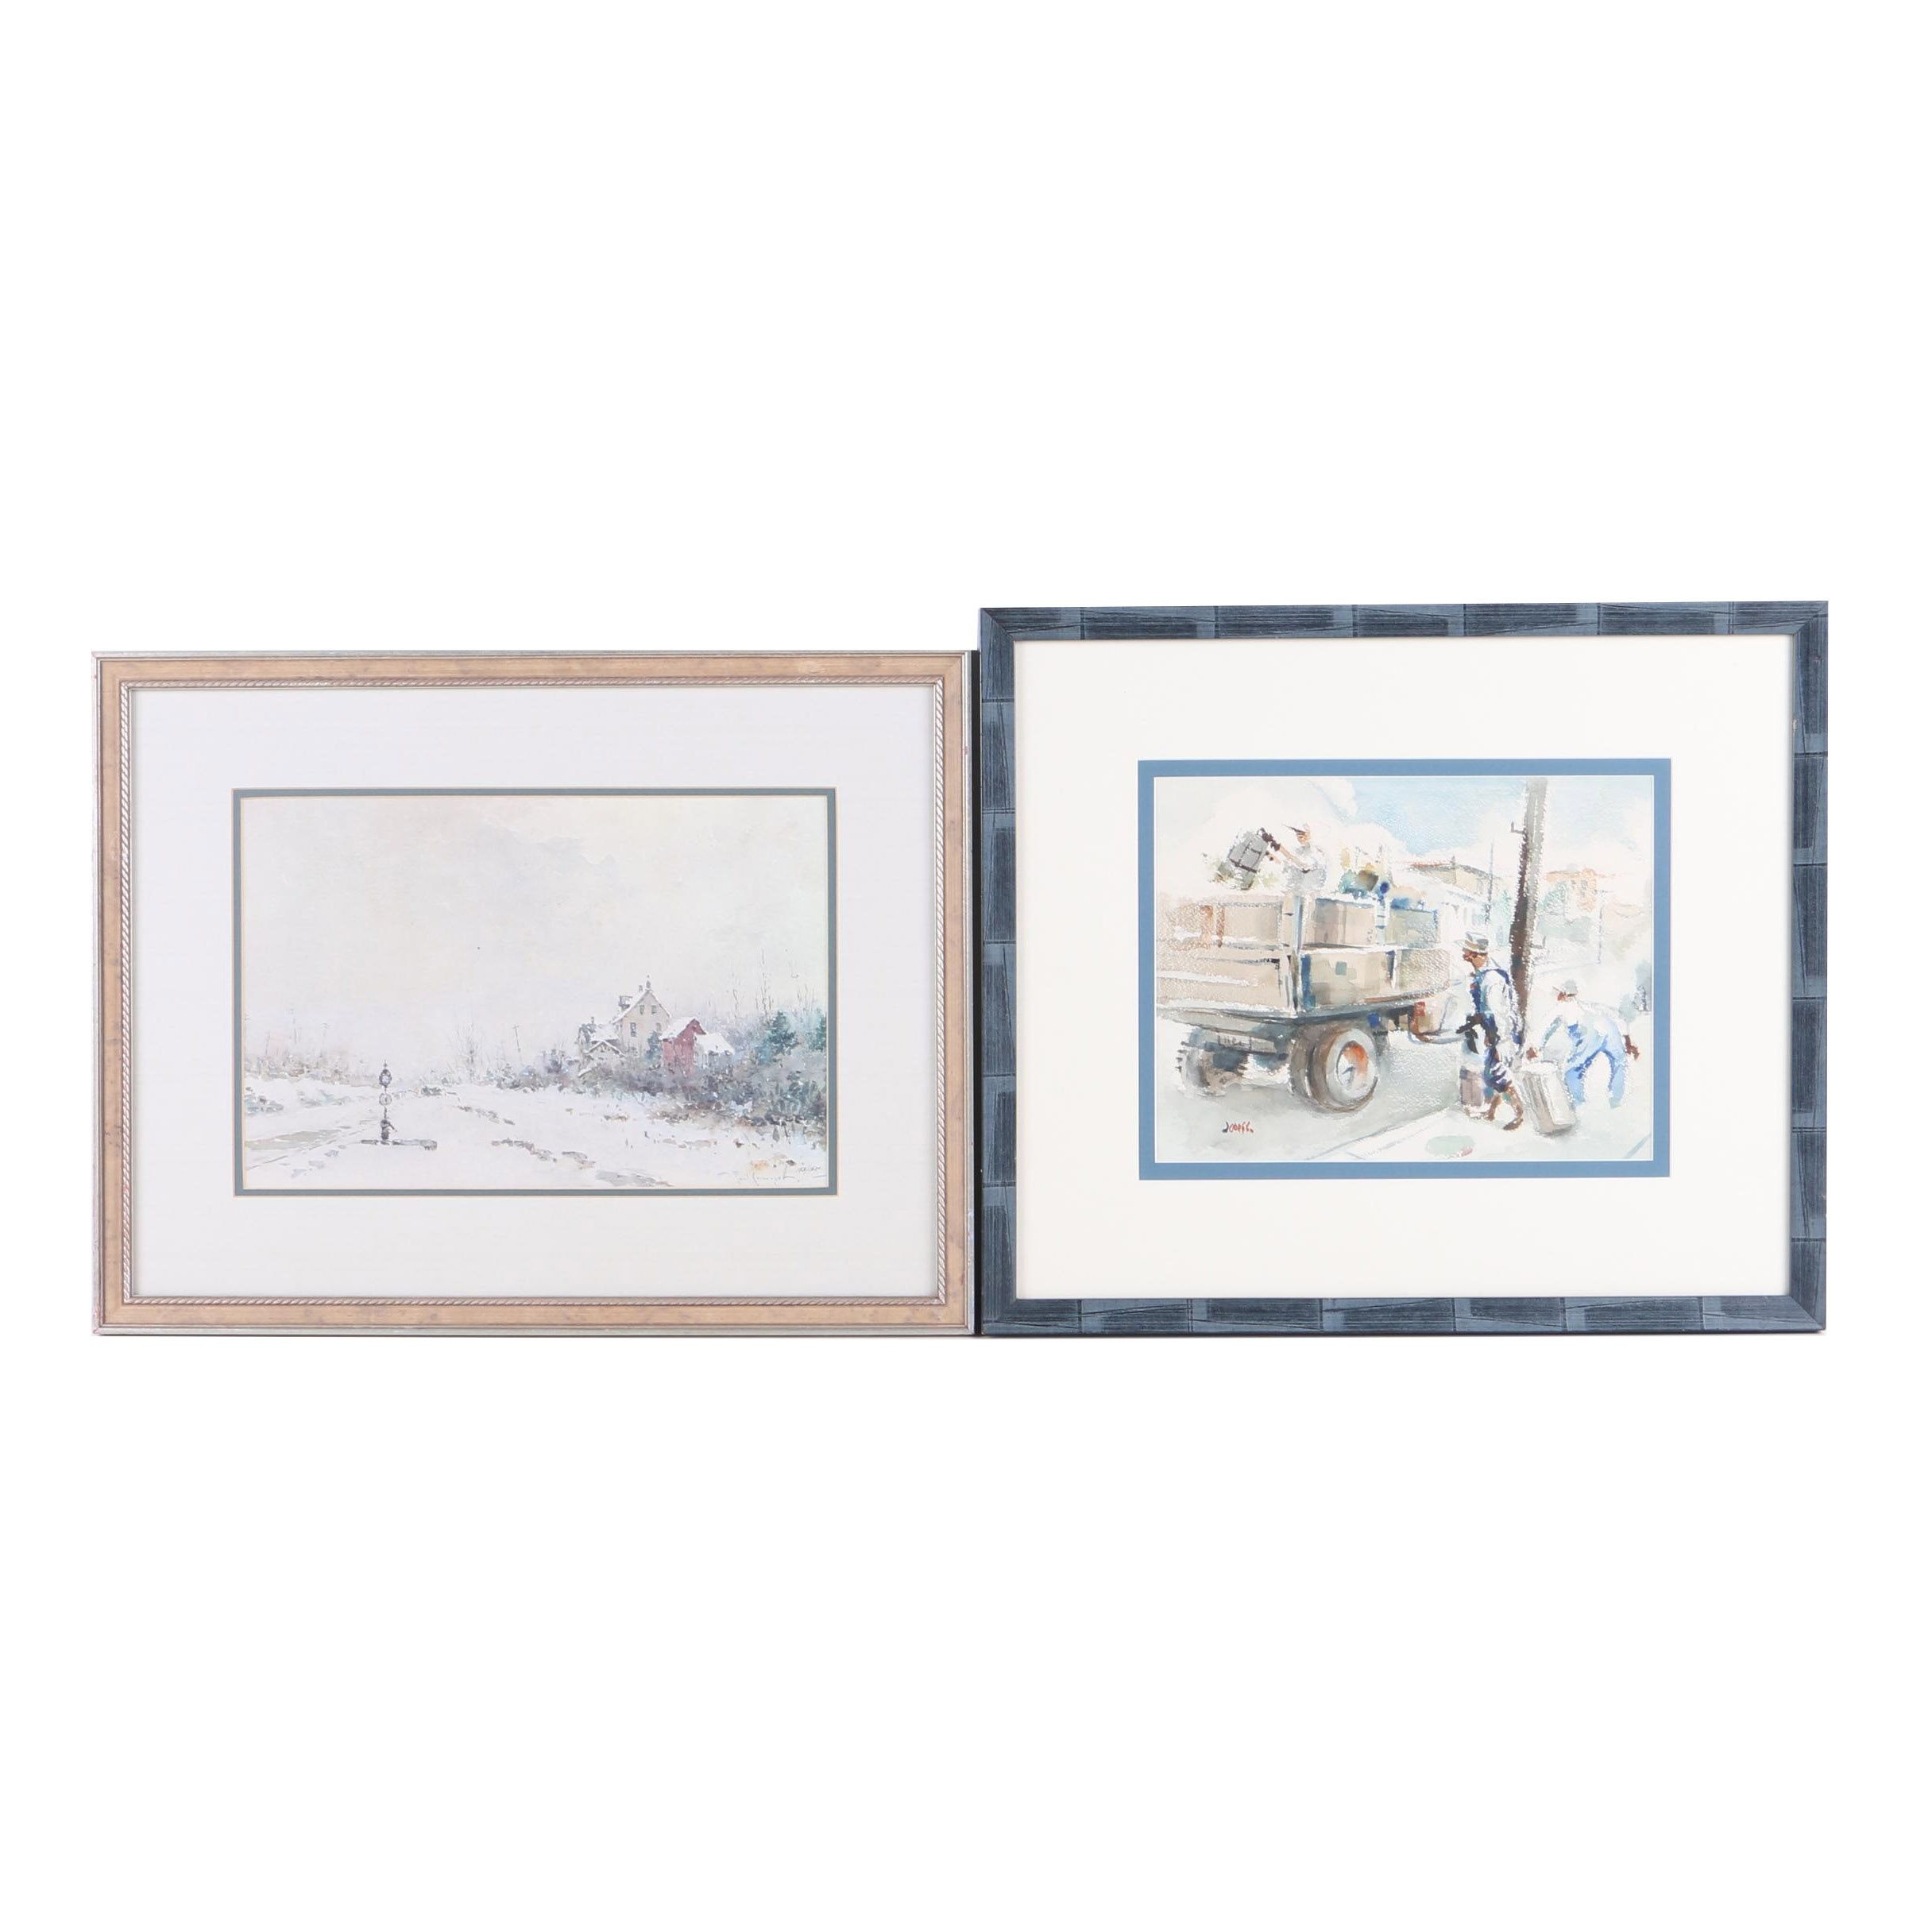 Watercolor Painting and Limited Edition Offset Lithograph on Paper